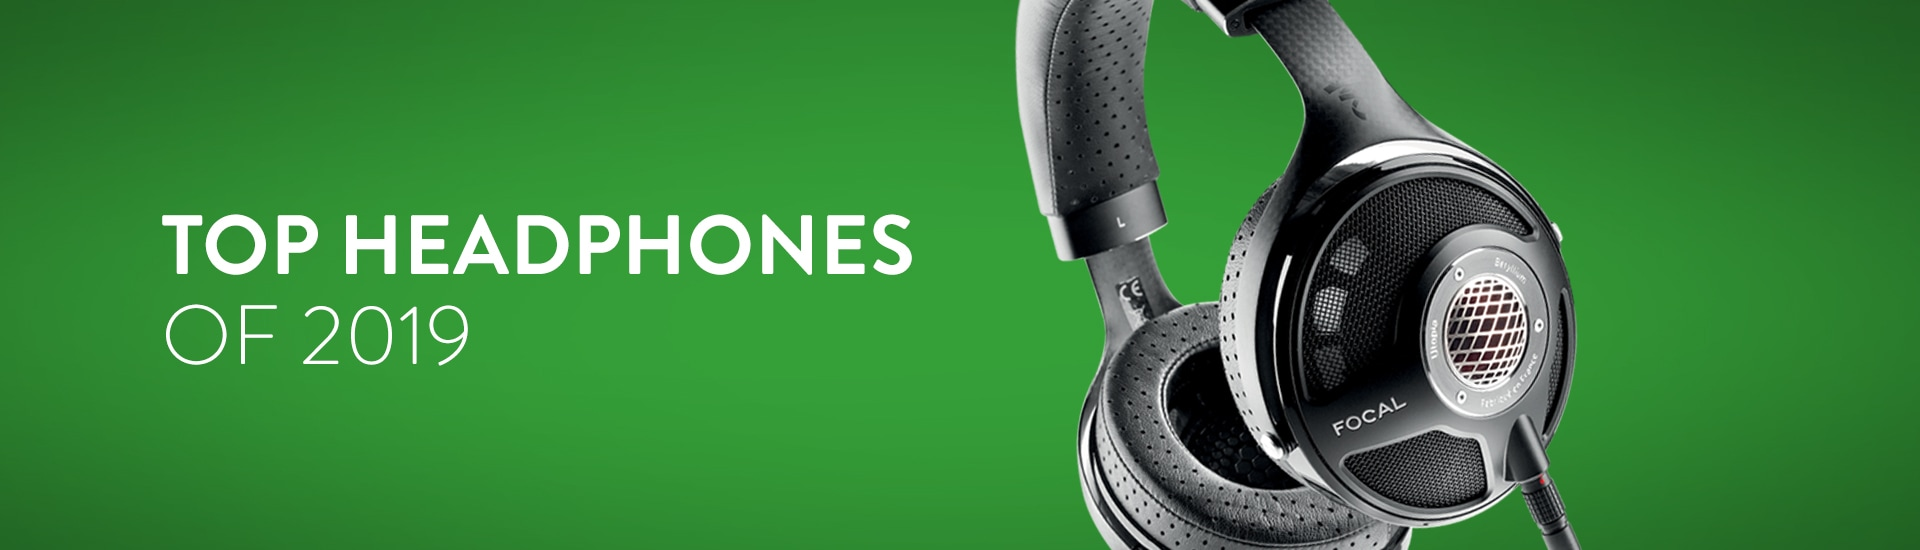 ed51265de12 Best Headphones of 2019 | World Wide Stereo